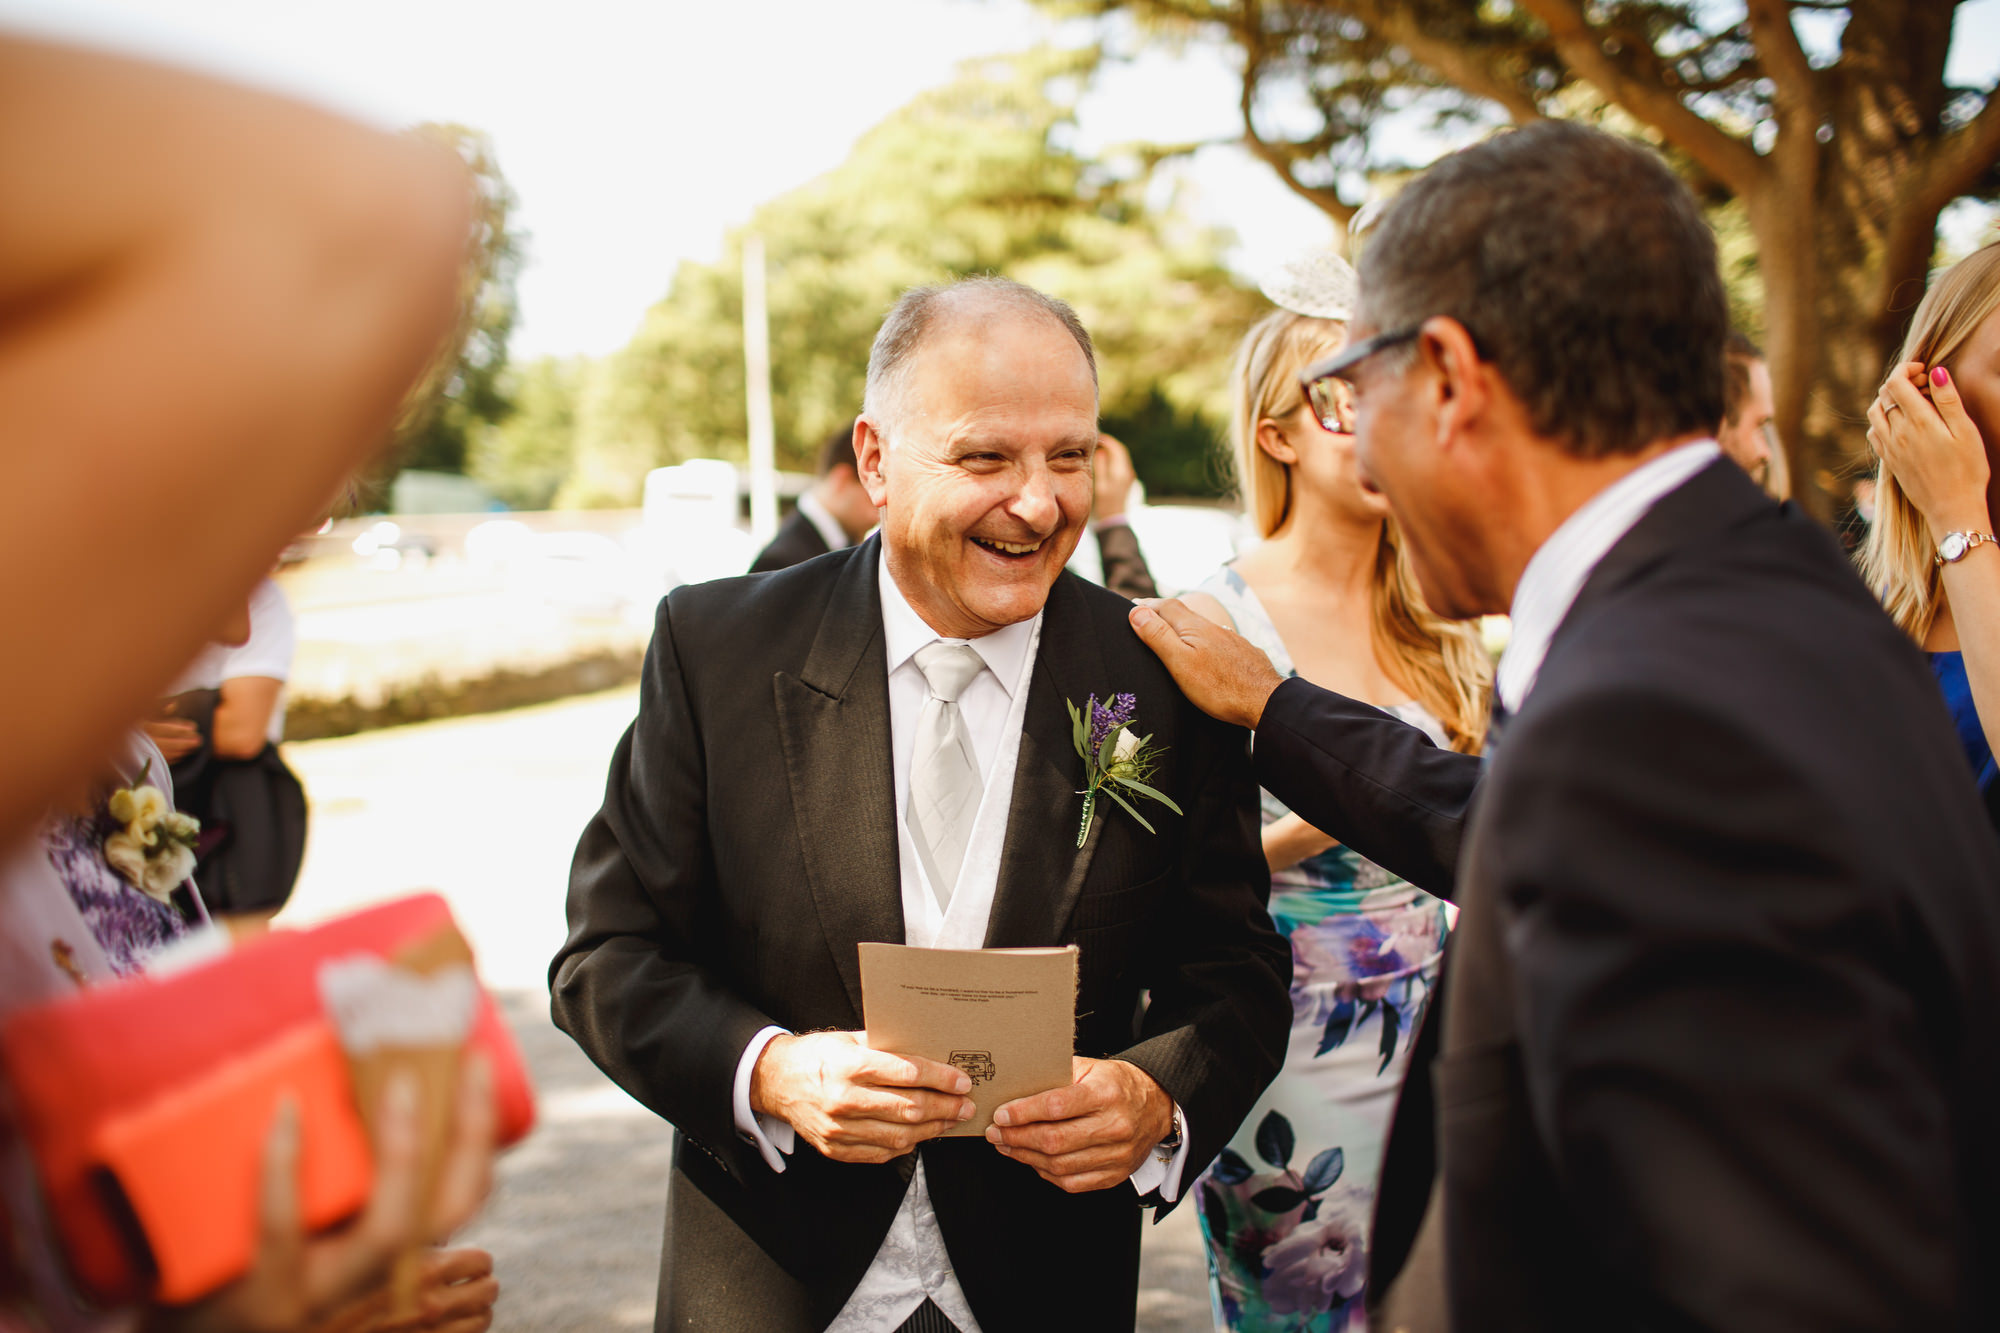 Elmore Court Wedding Photography